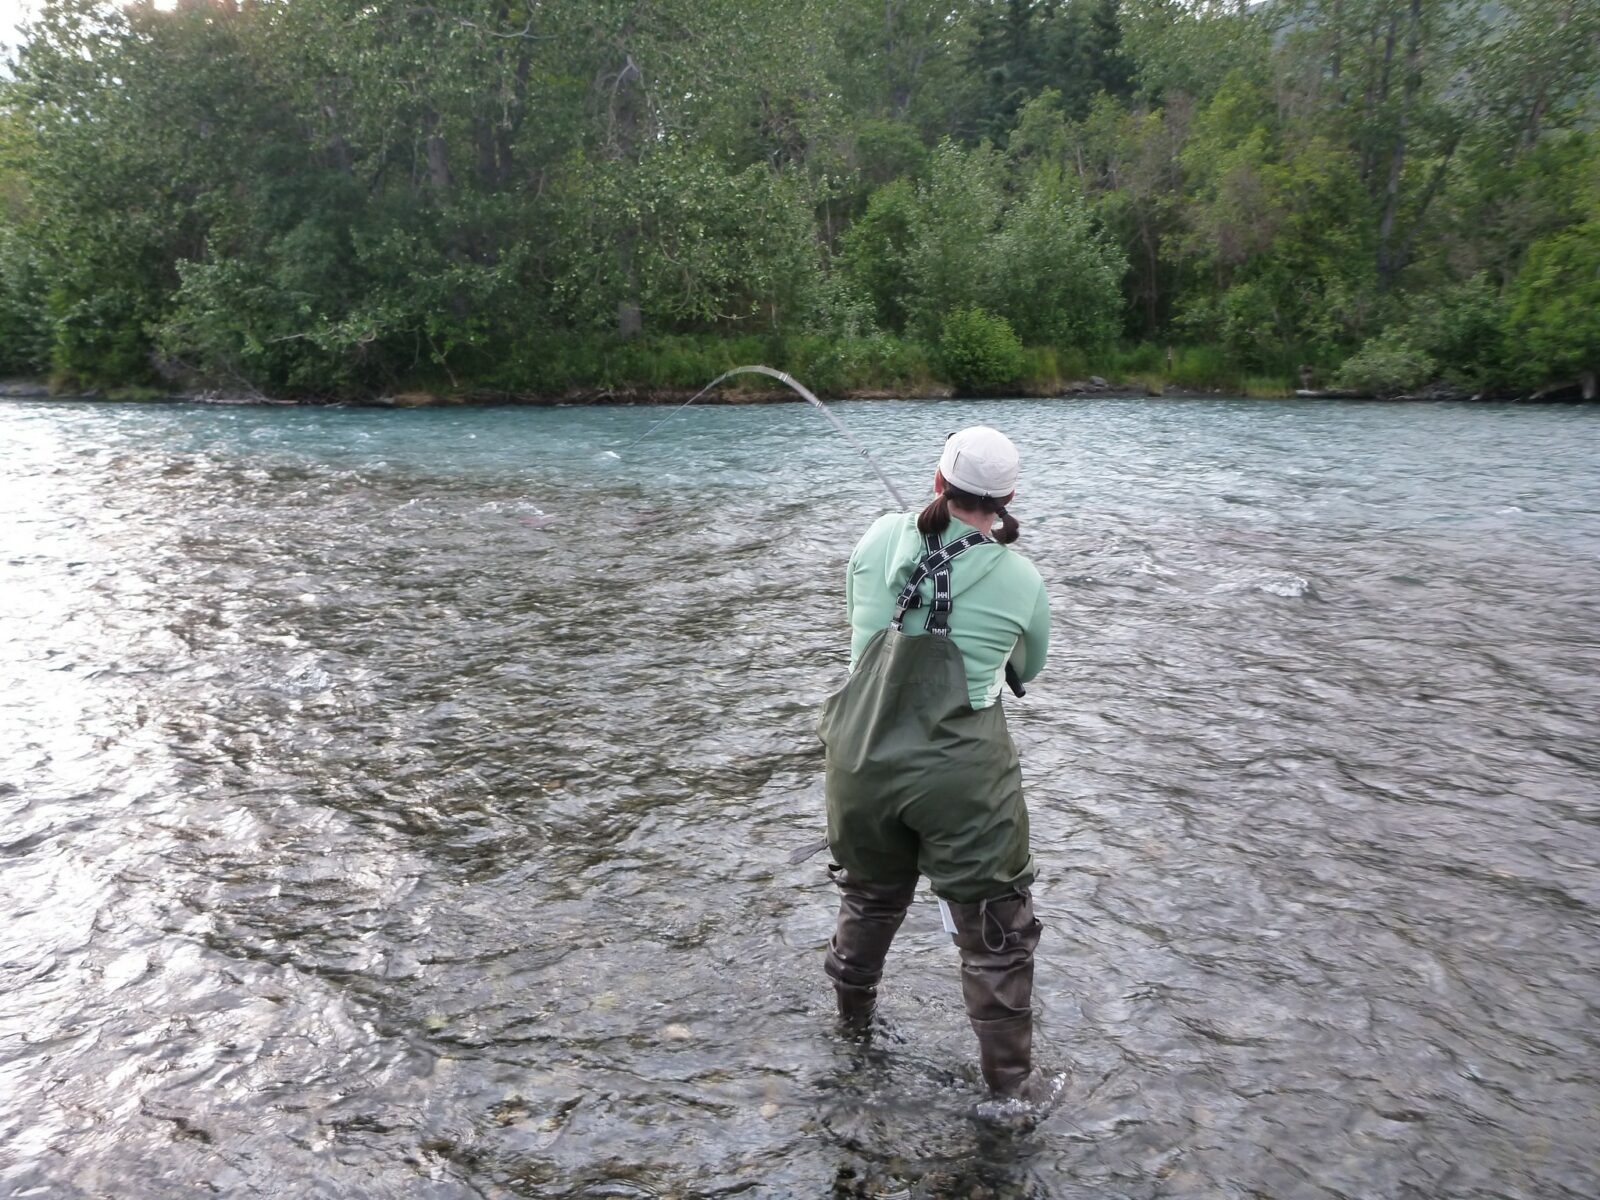 A woman wearing hip waders and a hat is fishing for salmon in the Russian River in Alaska. The river is surrounded by forest